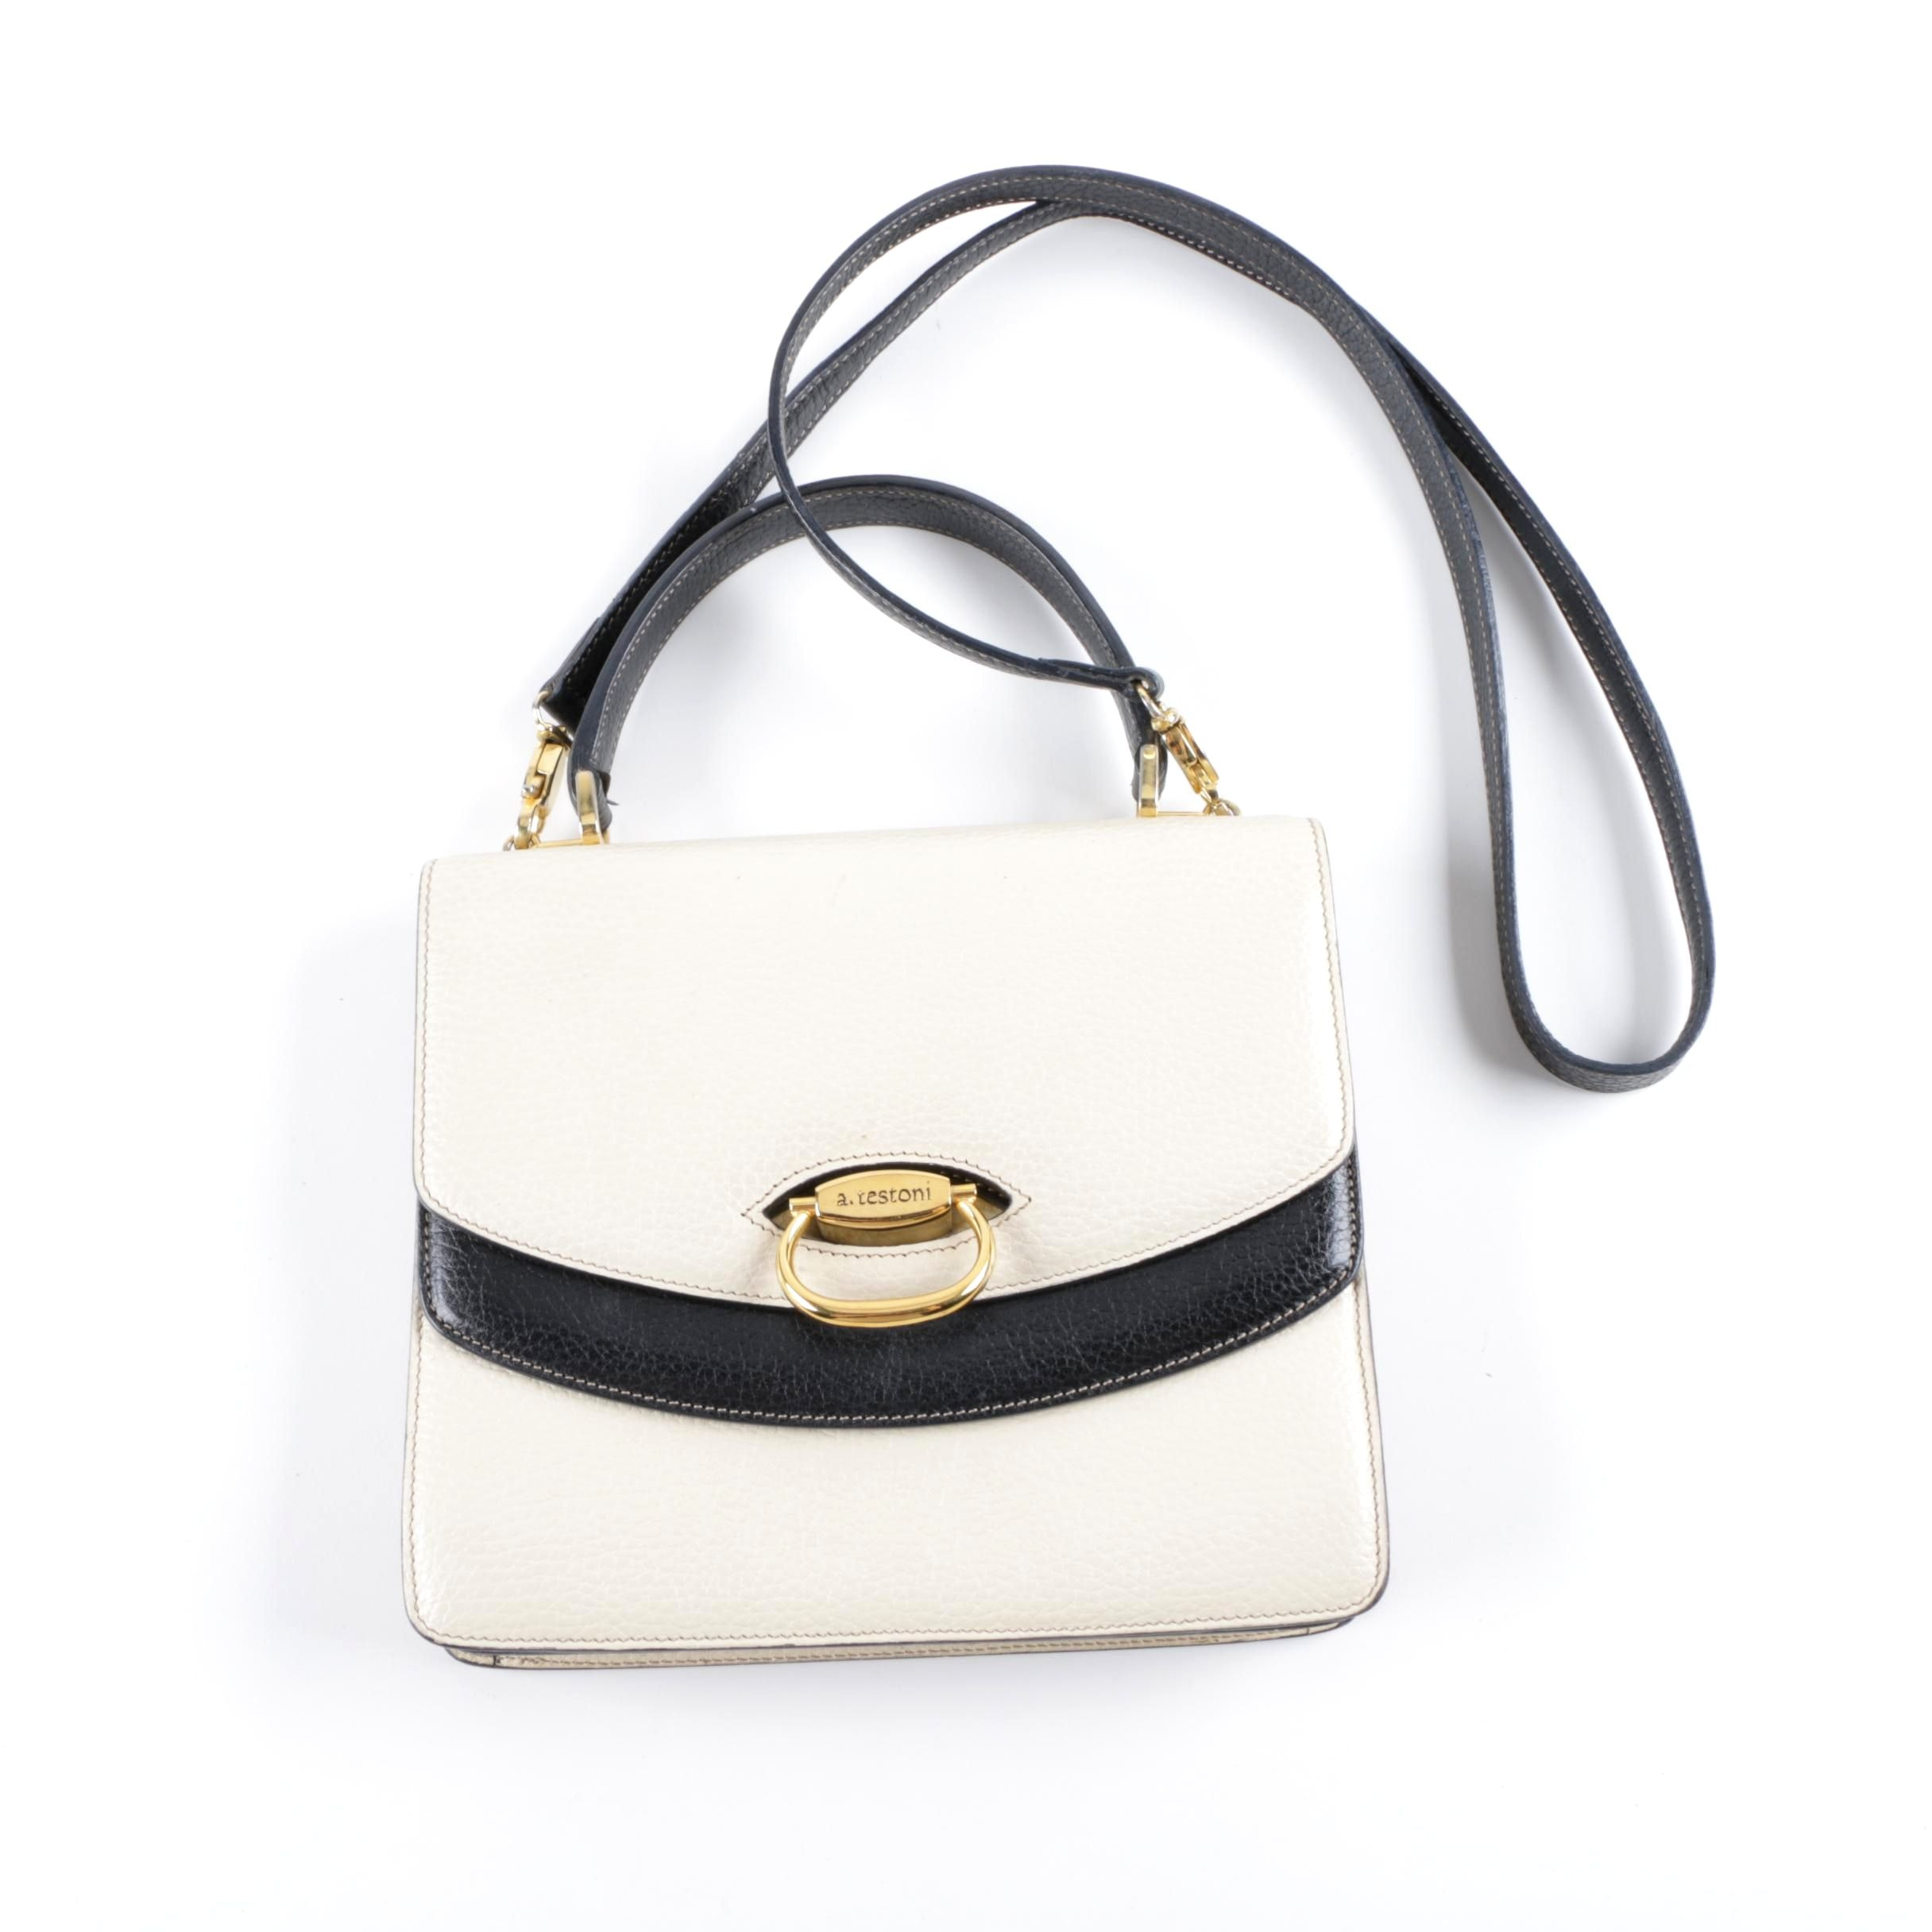 A. Testoni Off-White Pebbled Leather Crossbody Bag